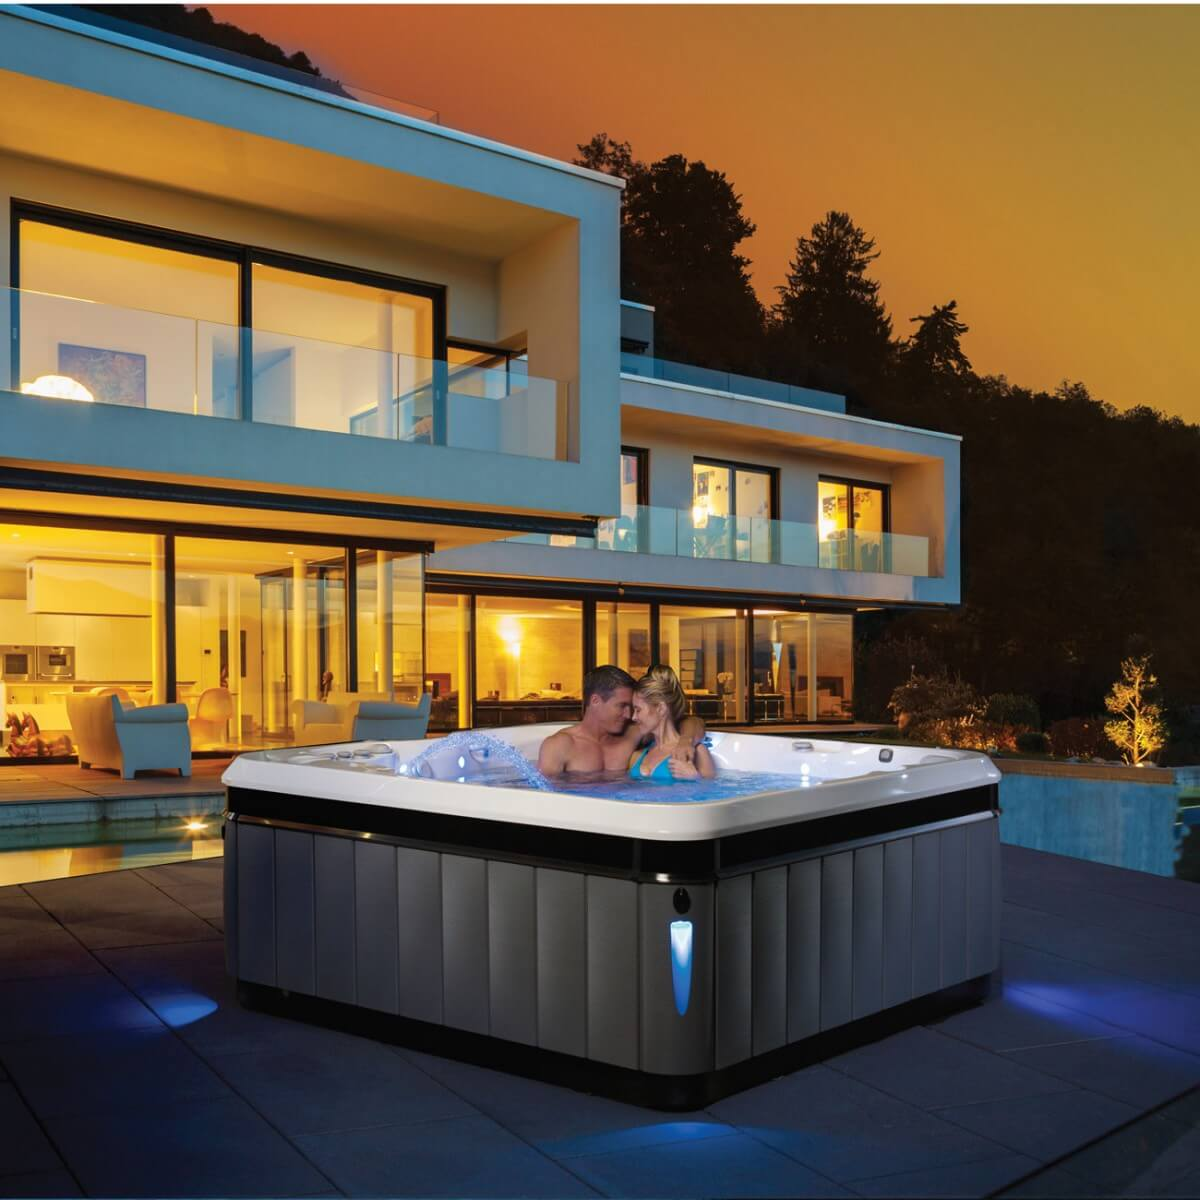 Swimming Pool Jacuzzi Edinburgh 6 Person Hot Tub Tahitian Caldera Spas Scotland